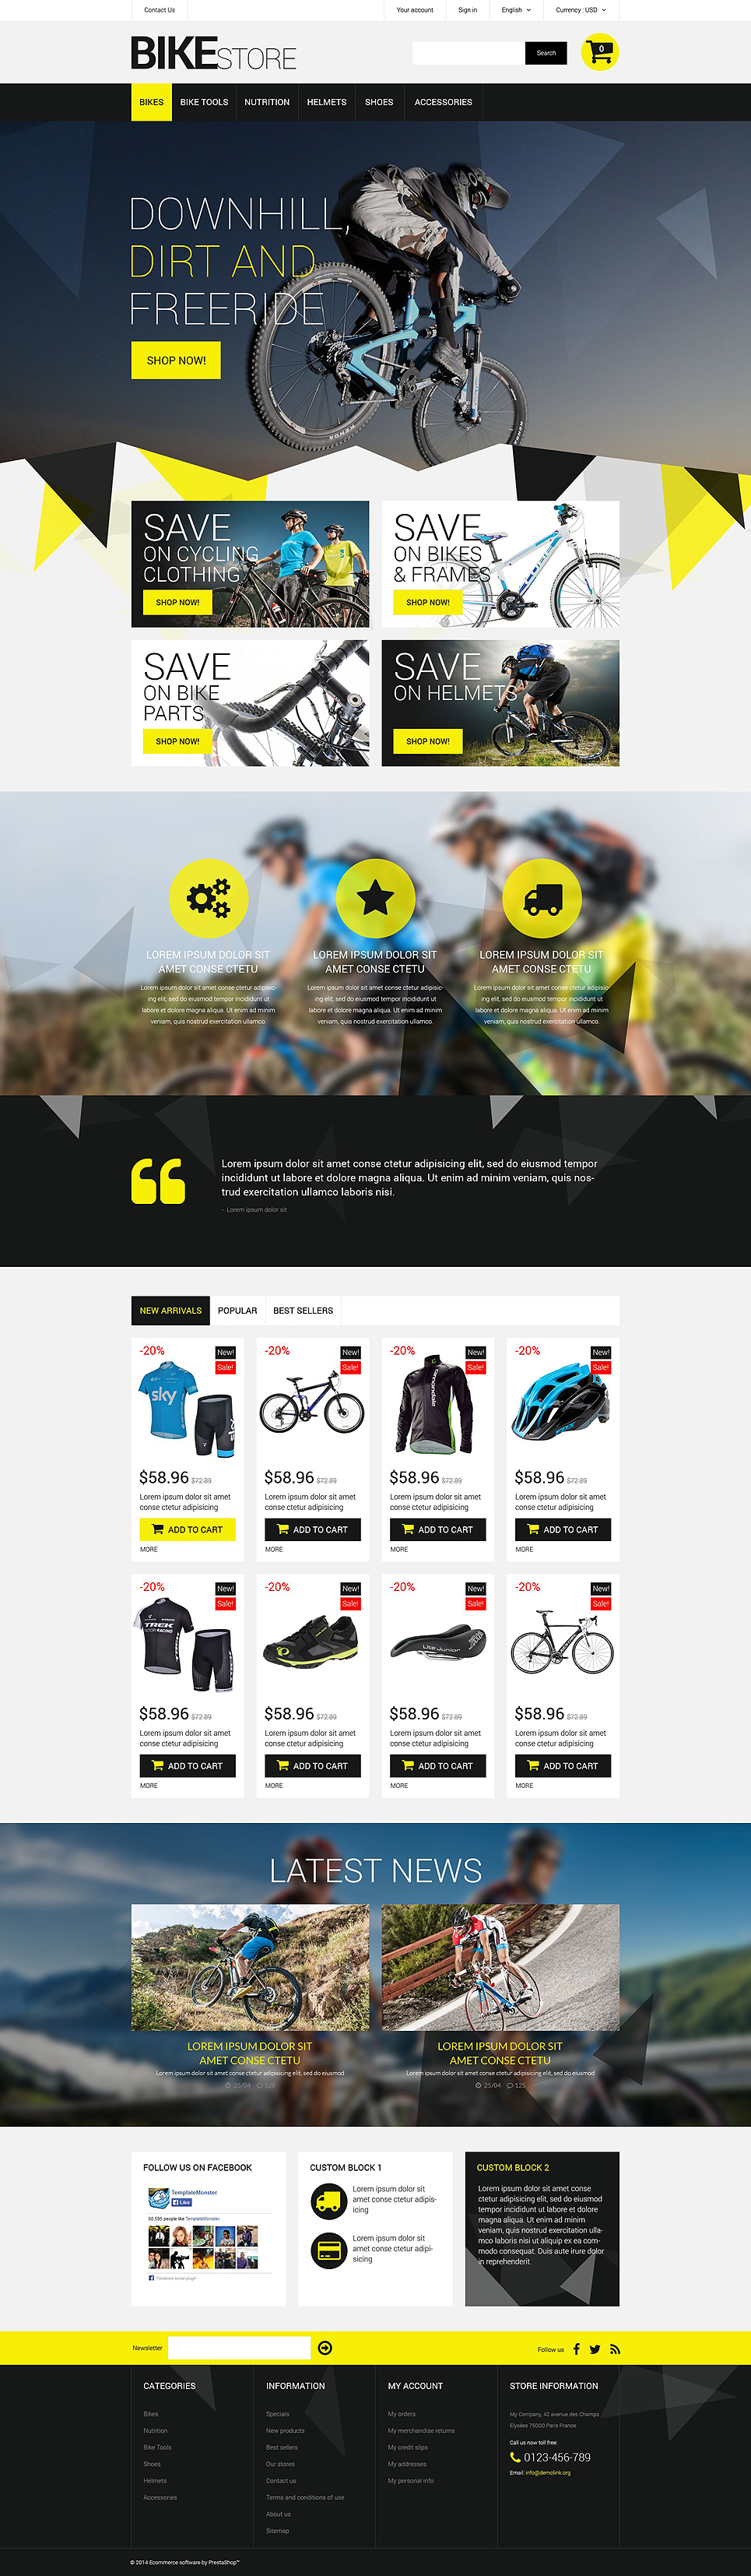 Bike Store (ecommerce template for PrestaShop ) Item Picture